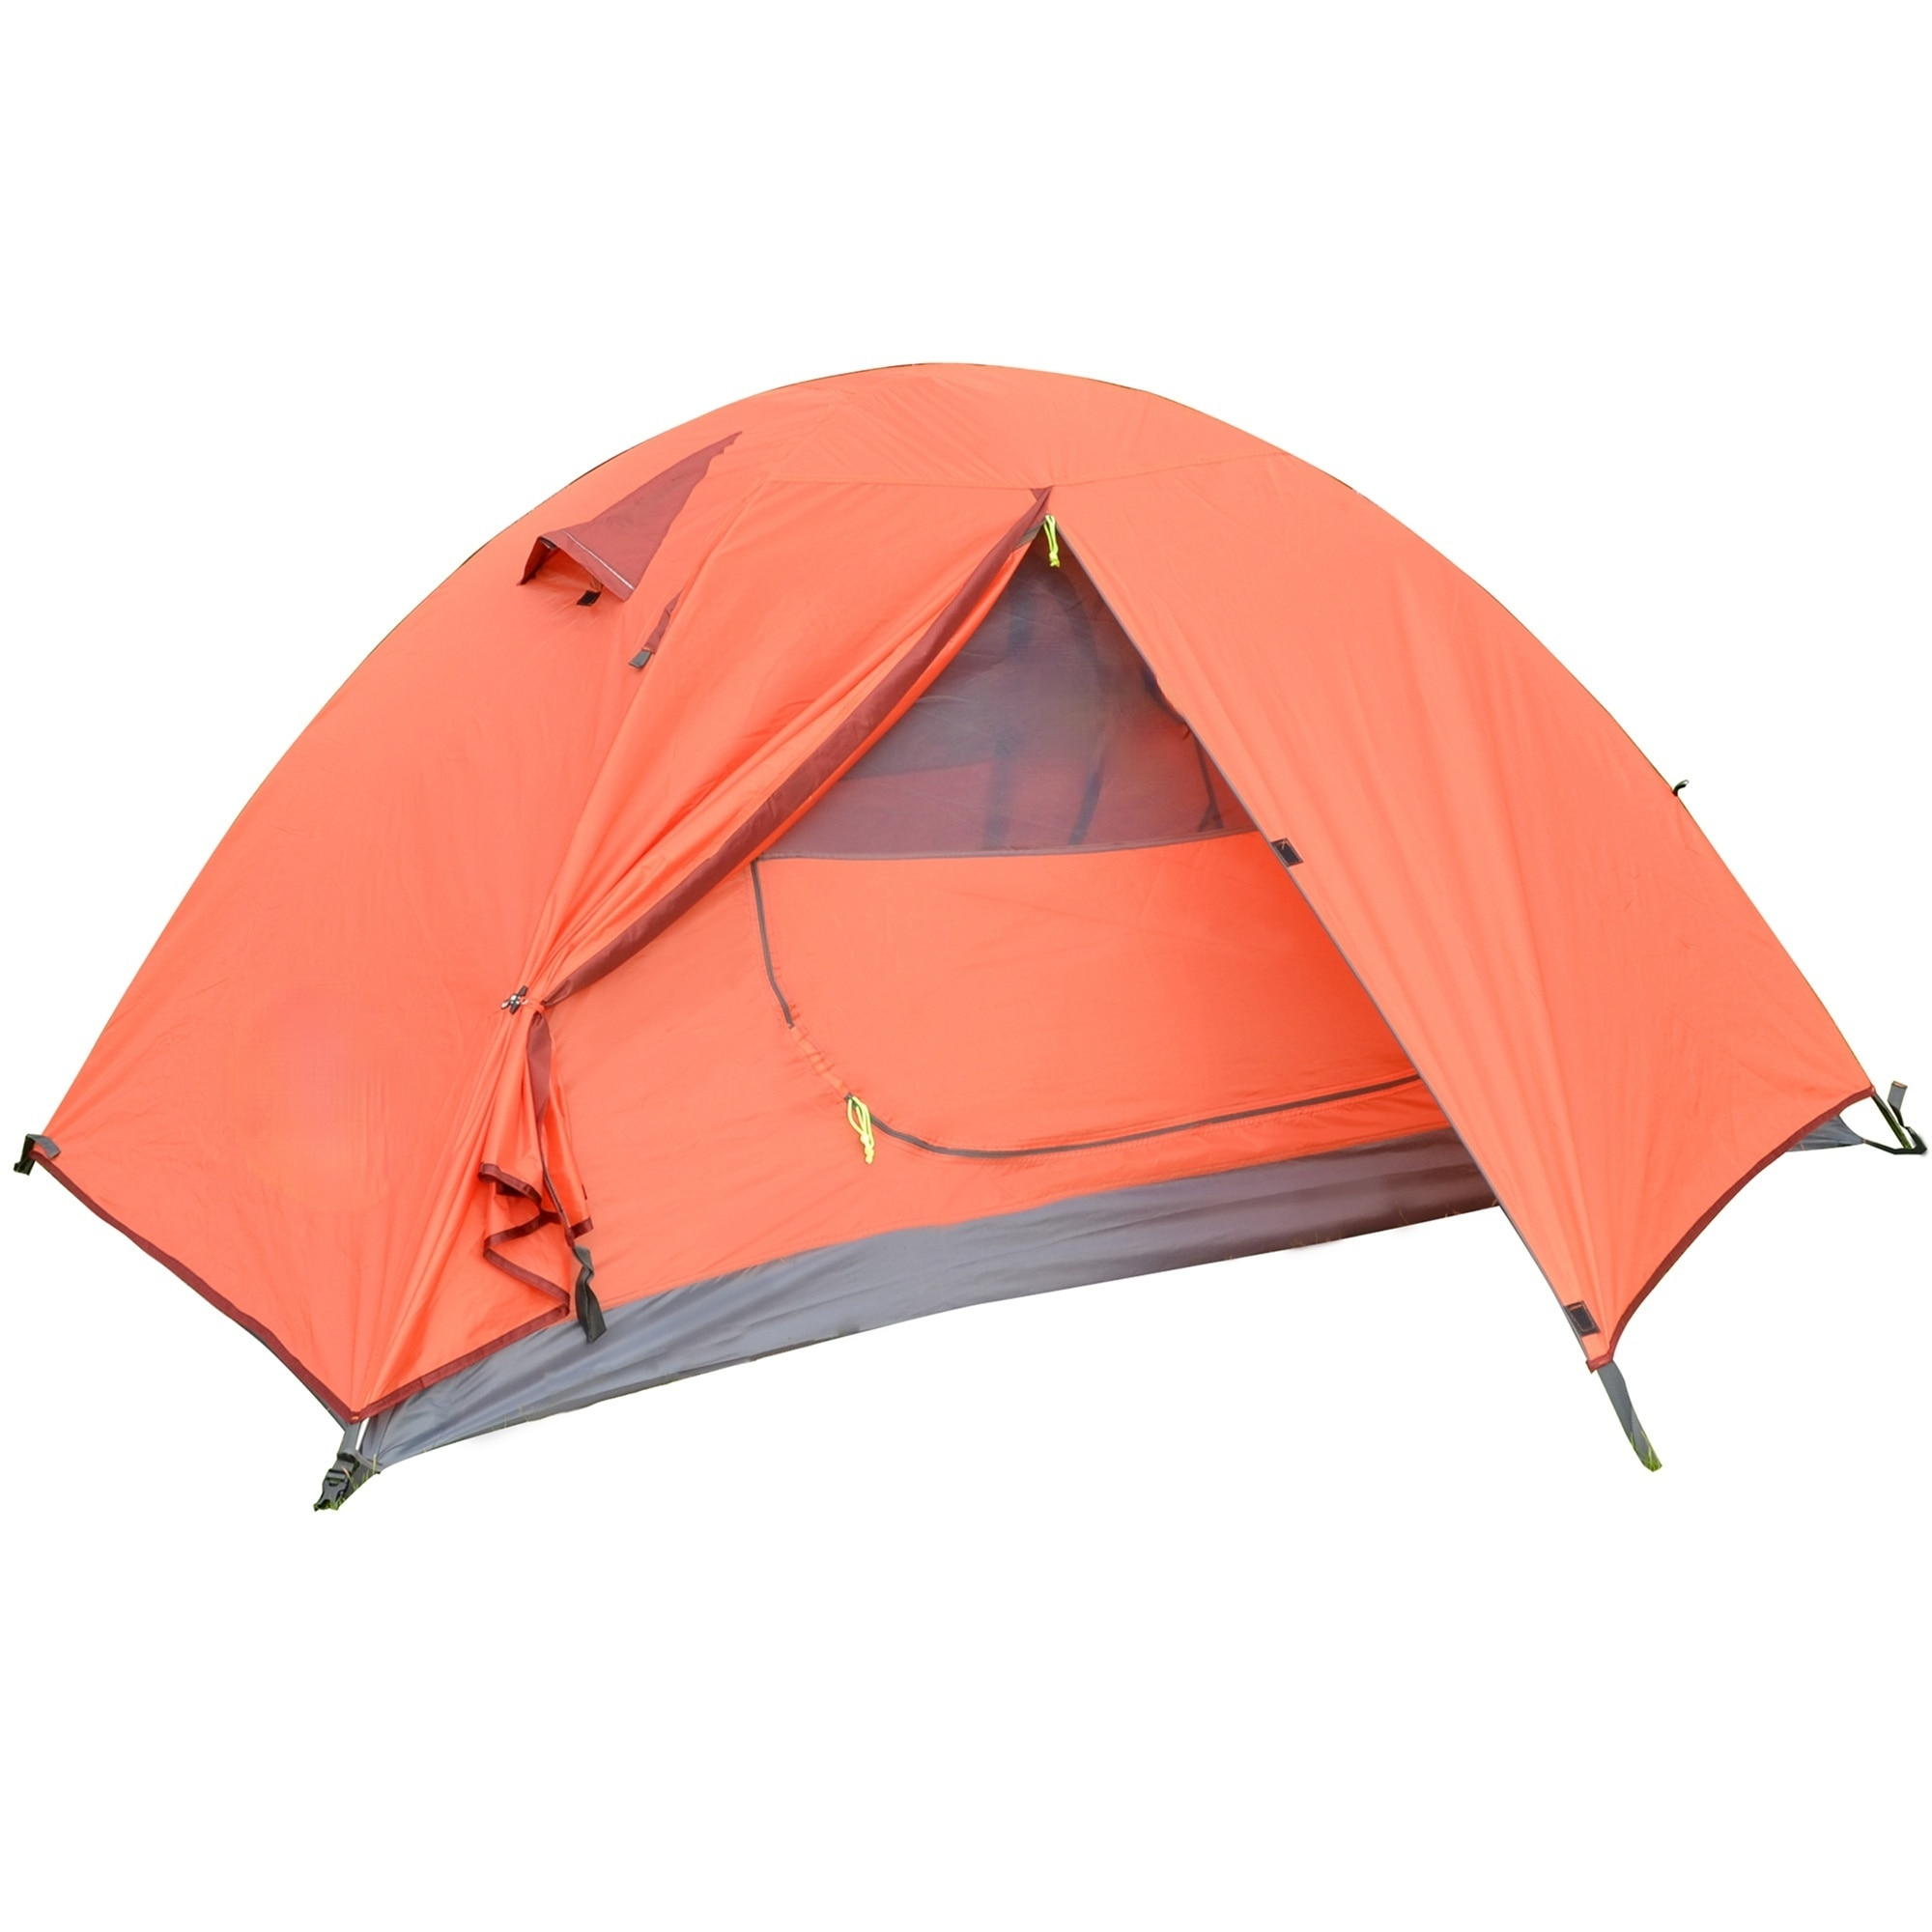 Backpack Camping Tent Lightweight 1-3 Person Tent Double Waterproof Portable Aluminum Pole Travel Tent